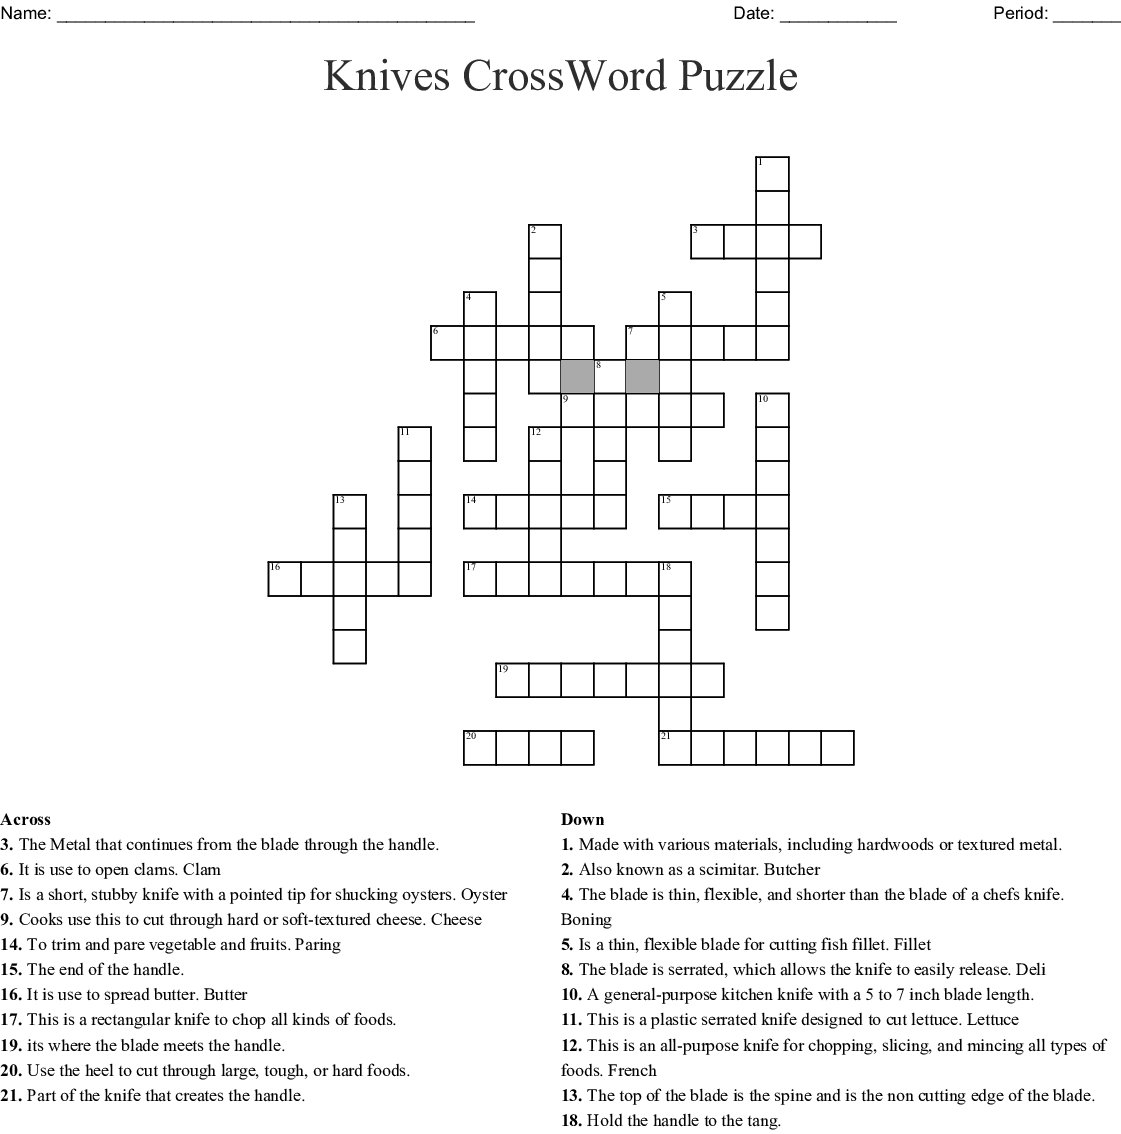 Using Knives Word Search - WordMint